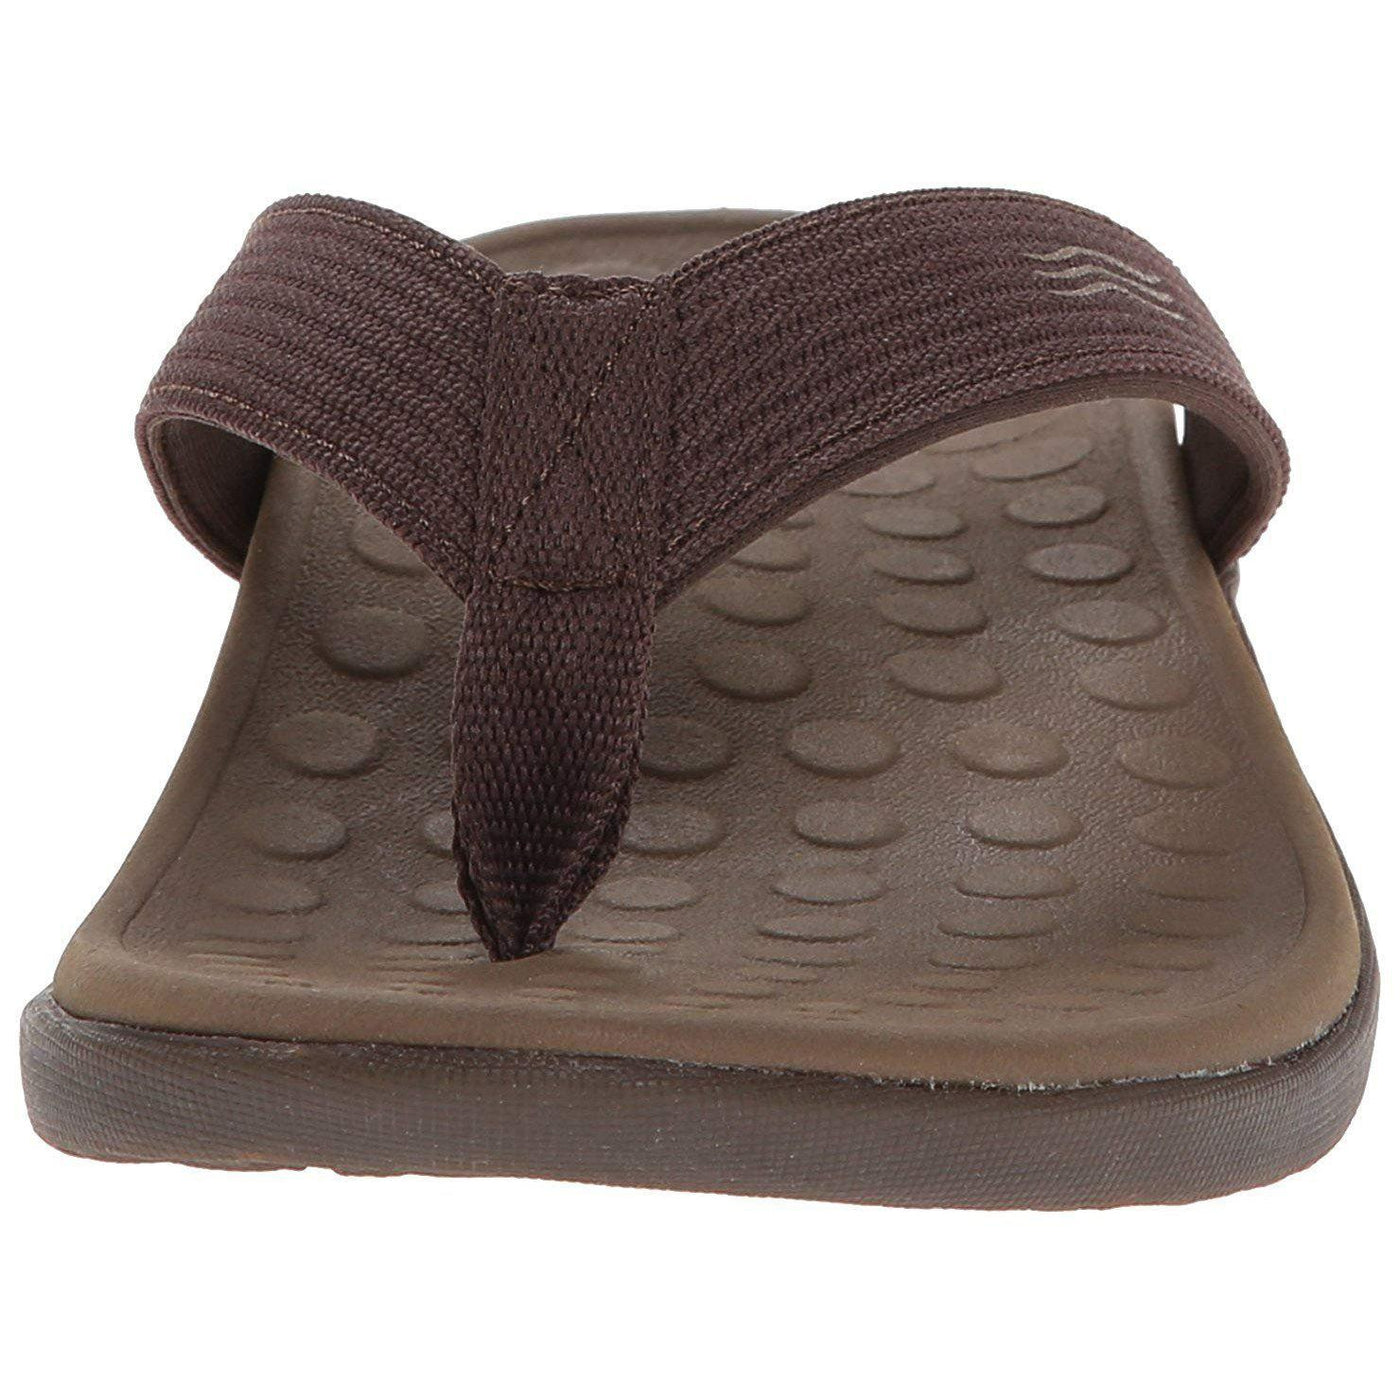 f416b3dcc47b Vionic Unisex Wave Toe-Post Sandal - Flip-Flop with Concealed Orthotic Arch  Support